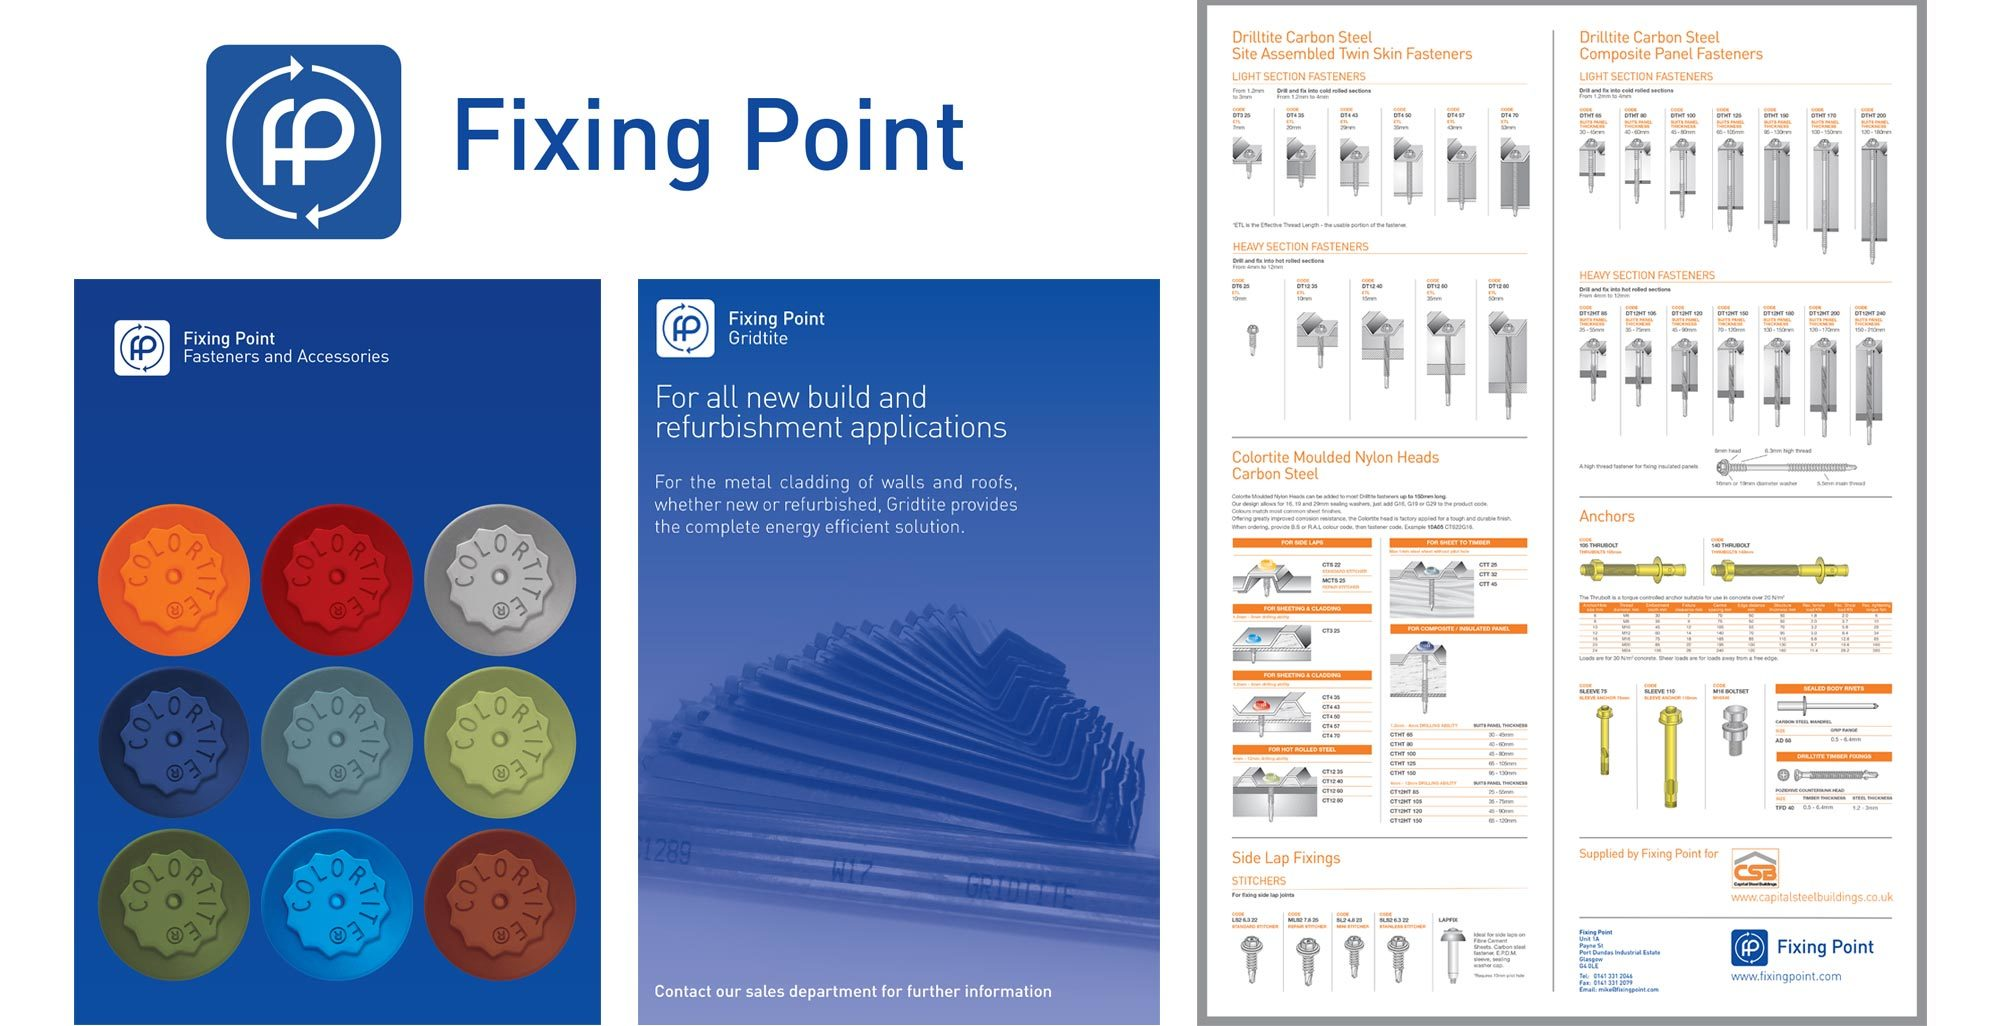 Example of the old Fixing Point brand identity